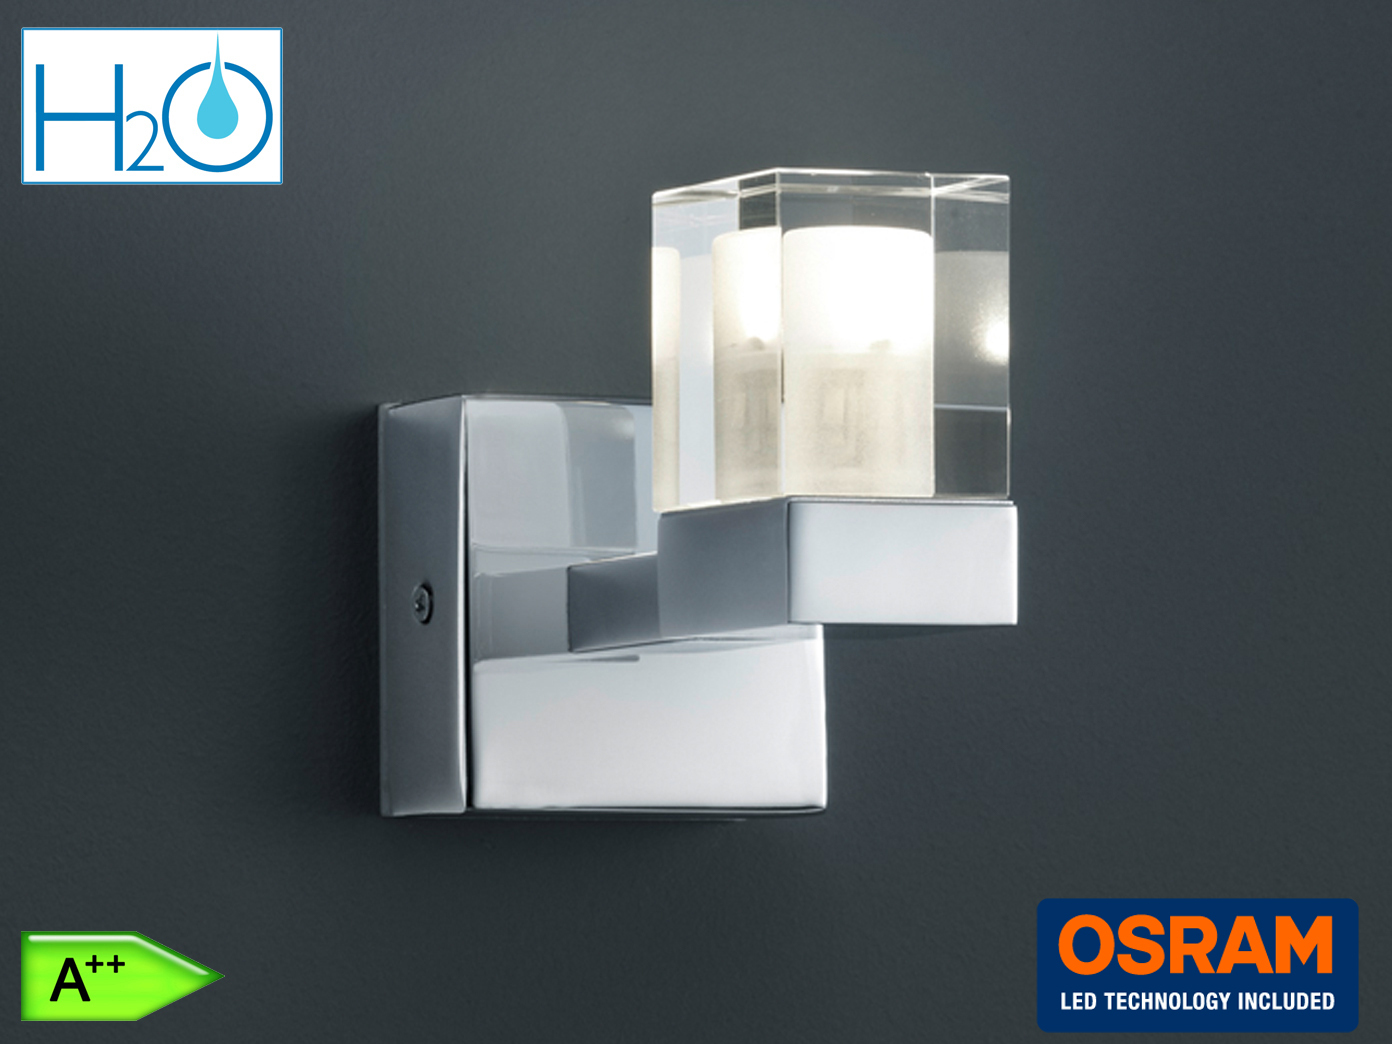 osram led mehr als 100 angebote fotos preise. Black Bedroom Furniture Sets. Home Design Ideas